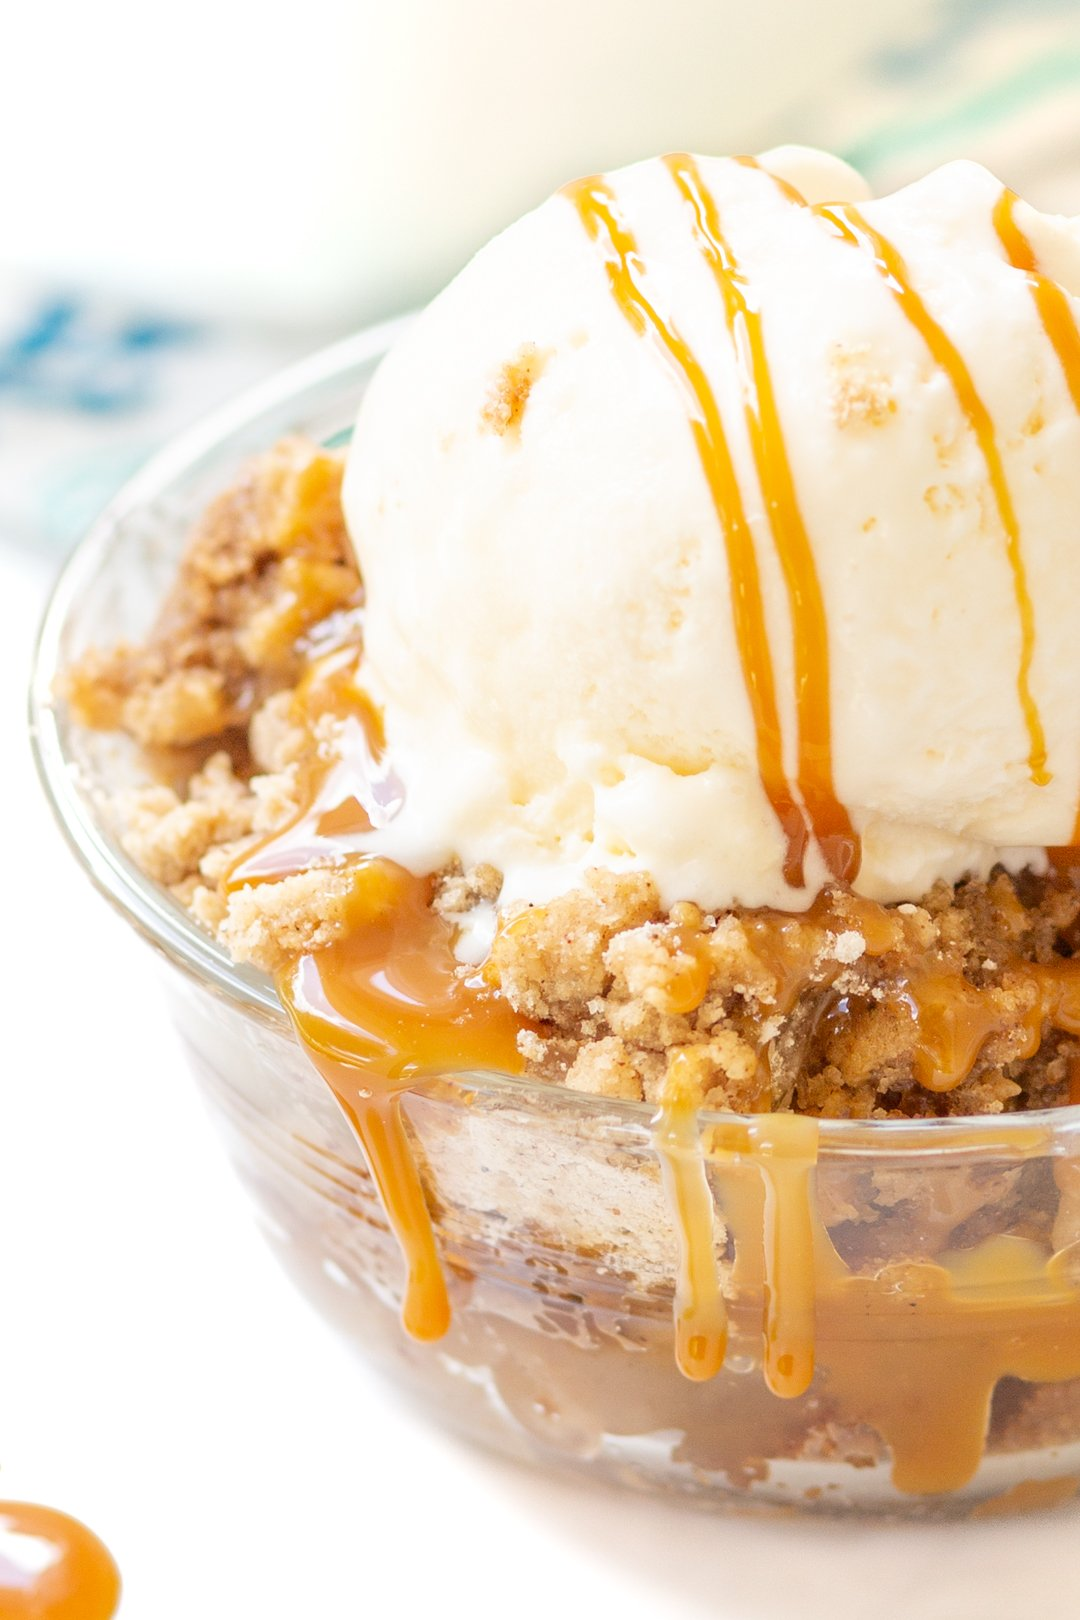 bowl of apple dump cake with oozing caramel and melty ice cream on top.